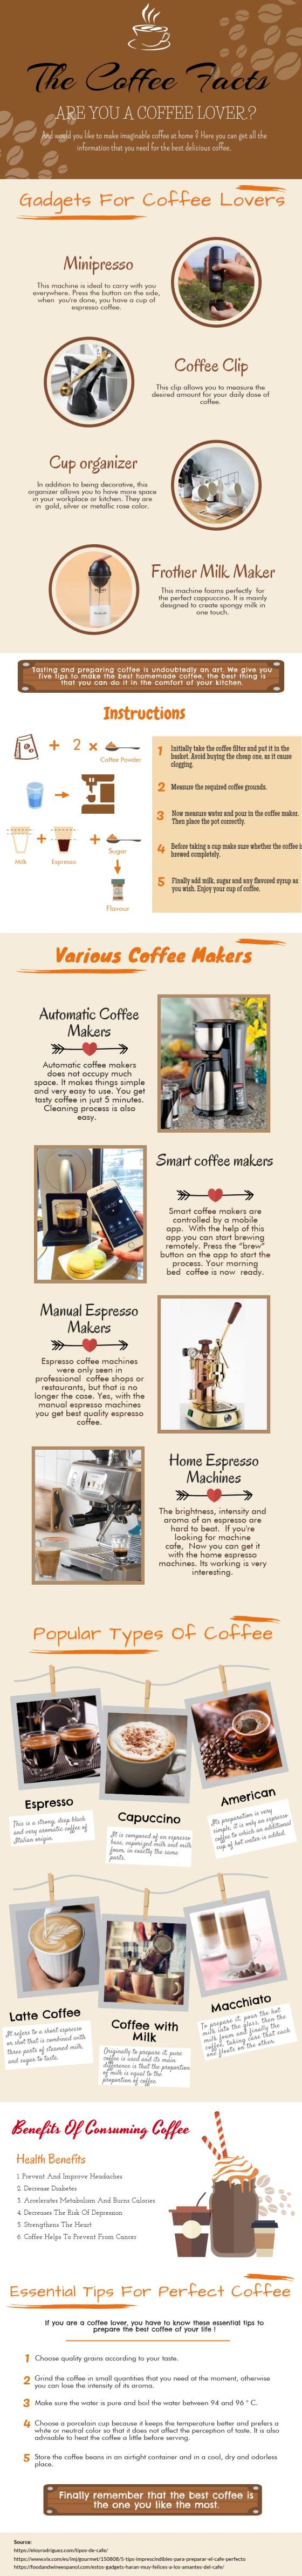 How to make coffee - types and brewing techniques to try